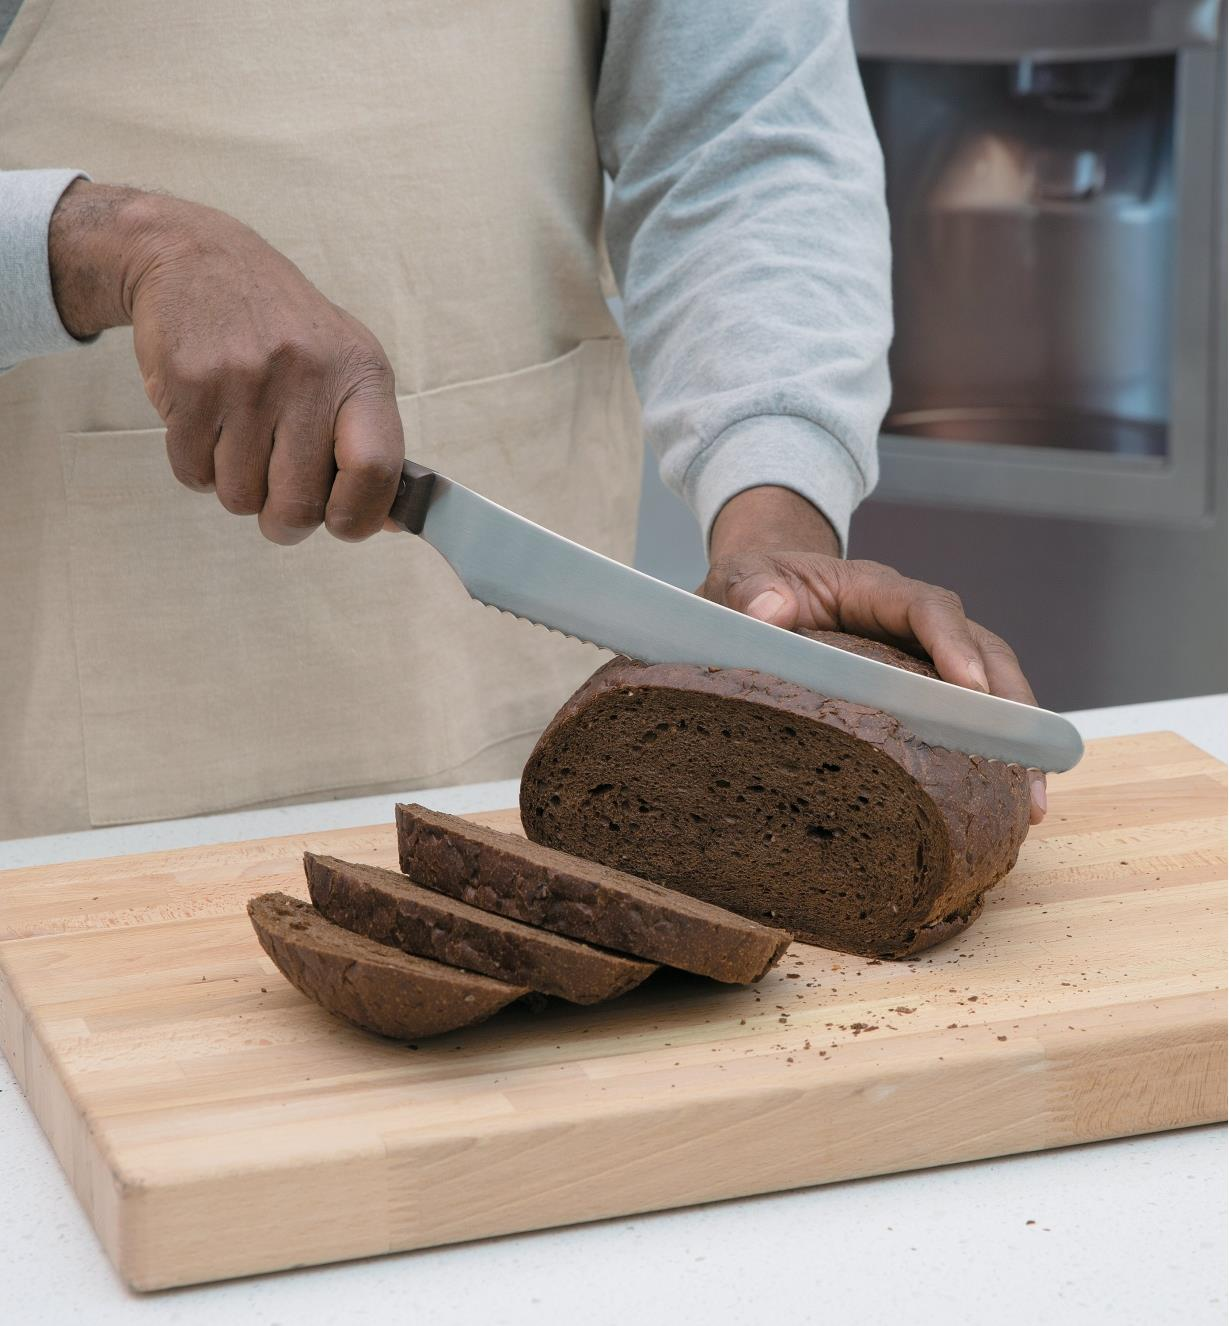 Slicing bread with the Long-Blade Bread Knife